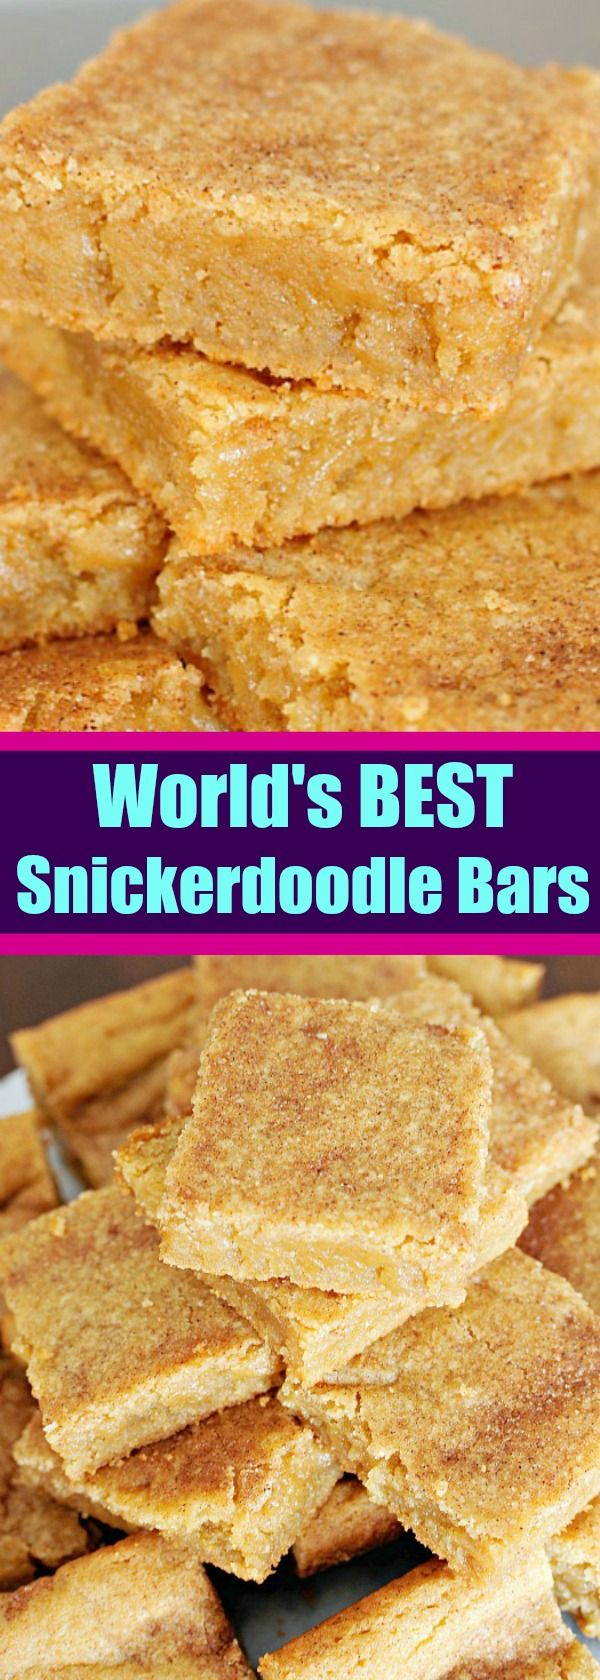 Everyone asks for this recipe!! The World's BEST Soft and Chewy Snickerdoodle Bars.